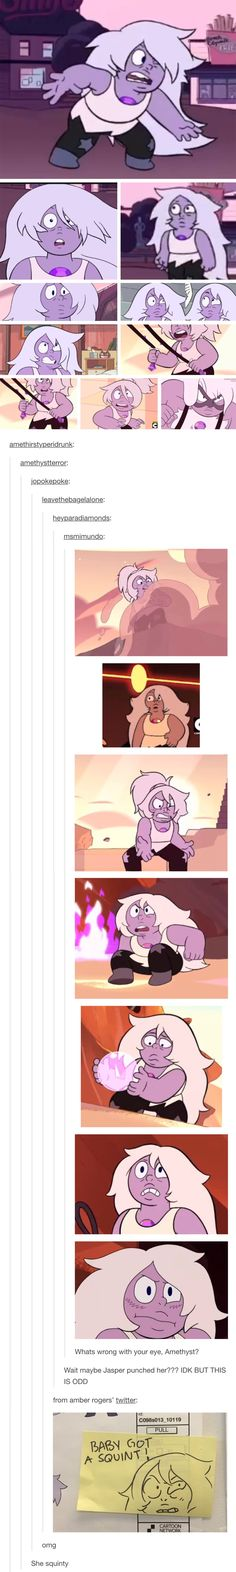 I think it's because she reformed too quickly the last time. She was worried about Steven and Connie, ya know?